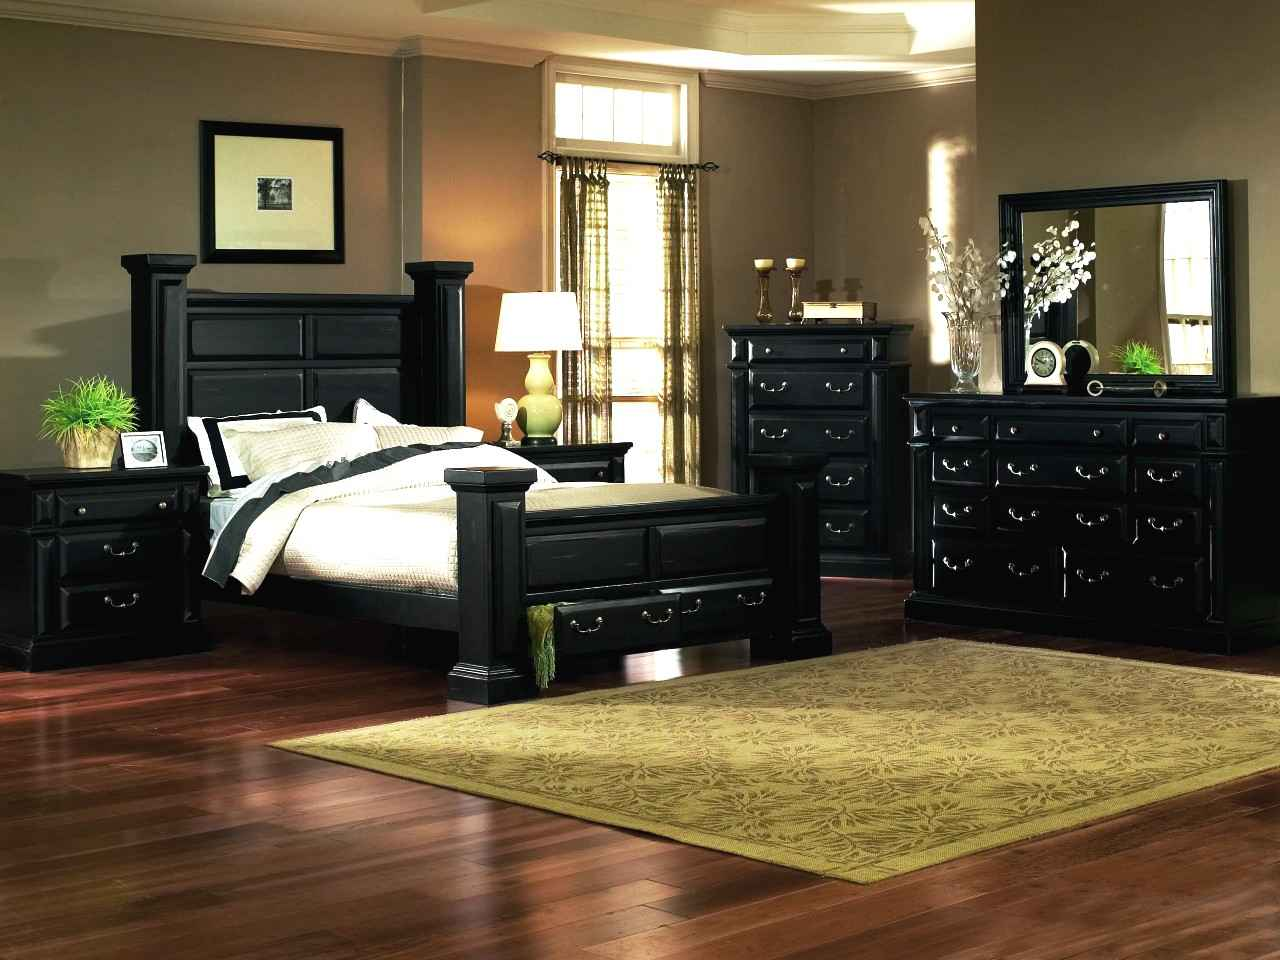 rustic black bedroom furniture photo - 3